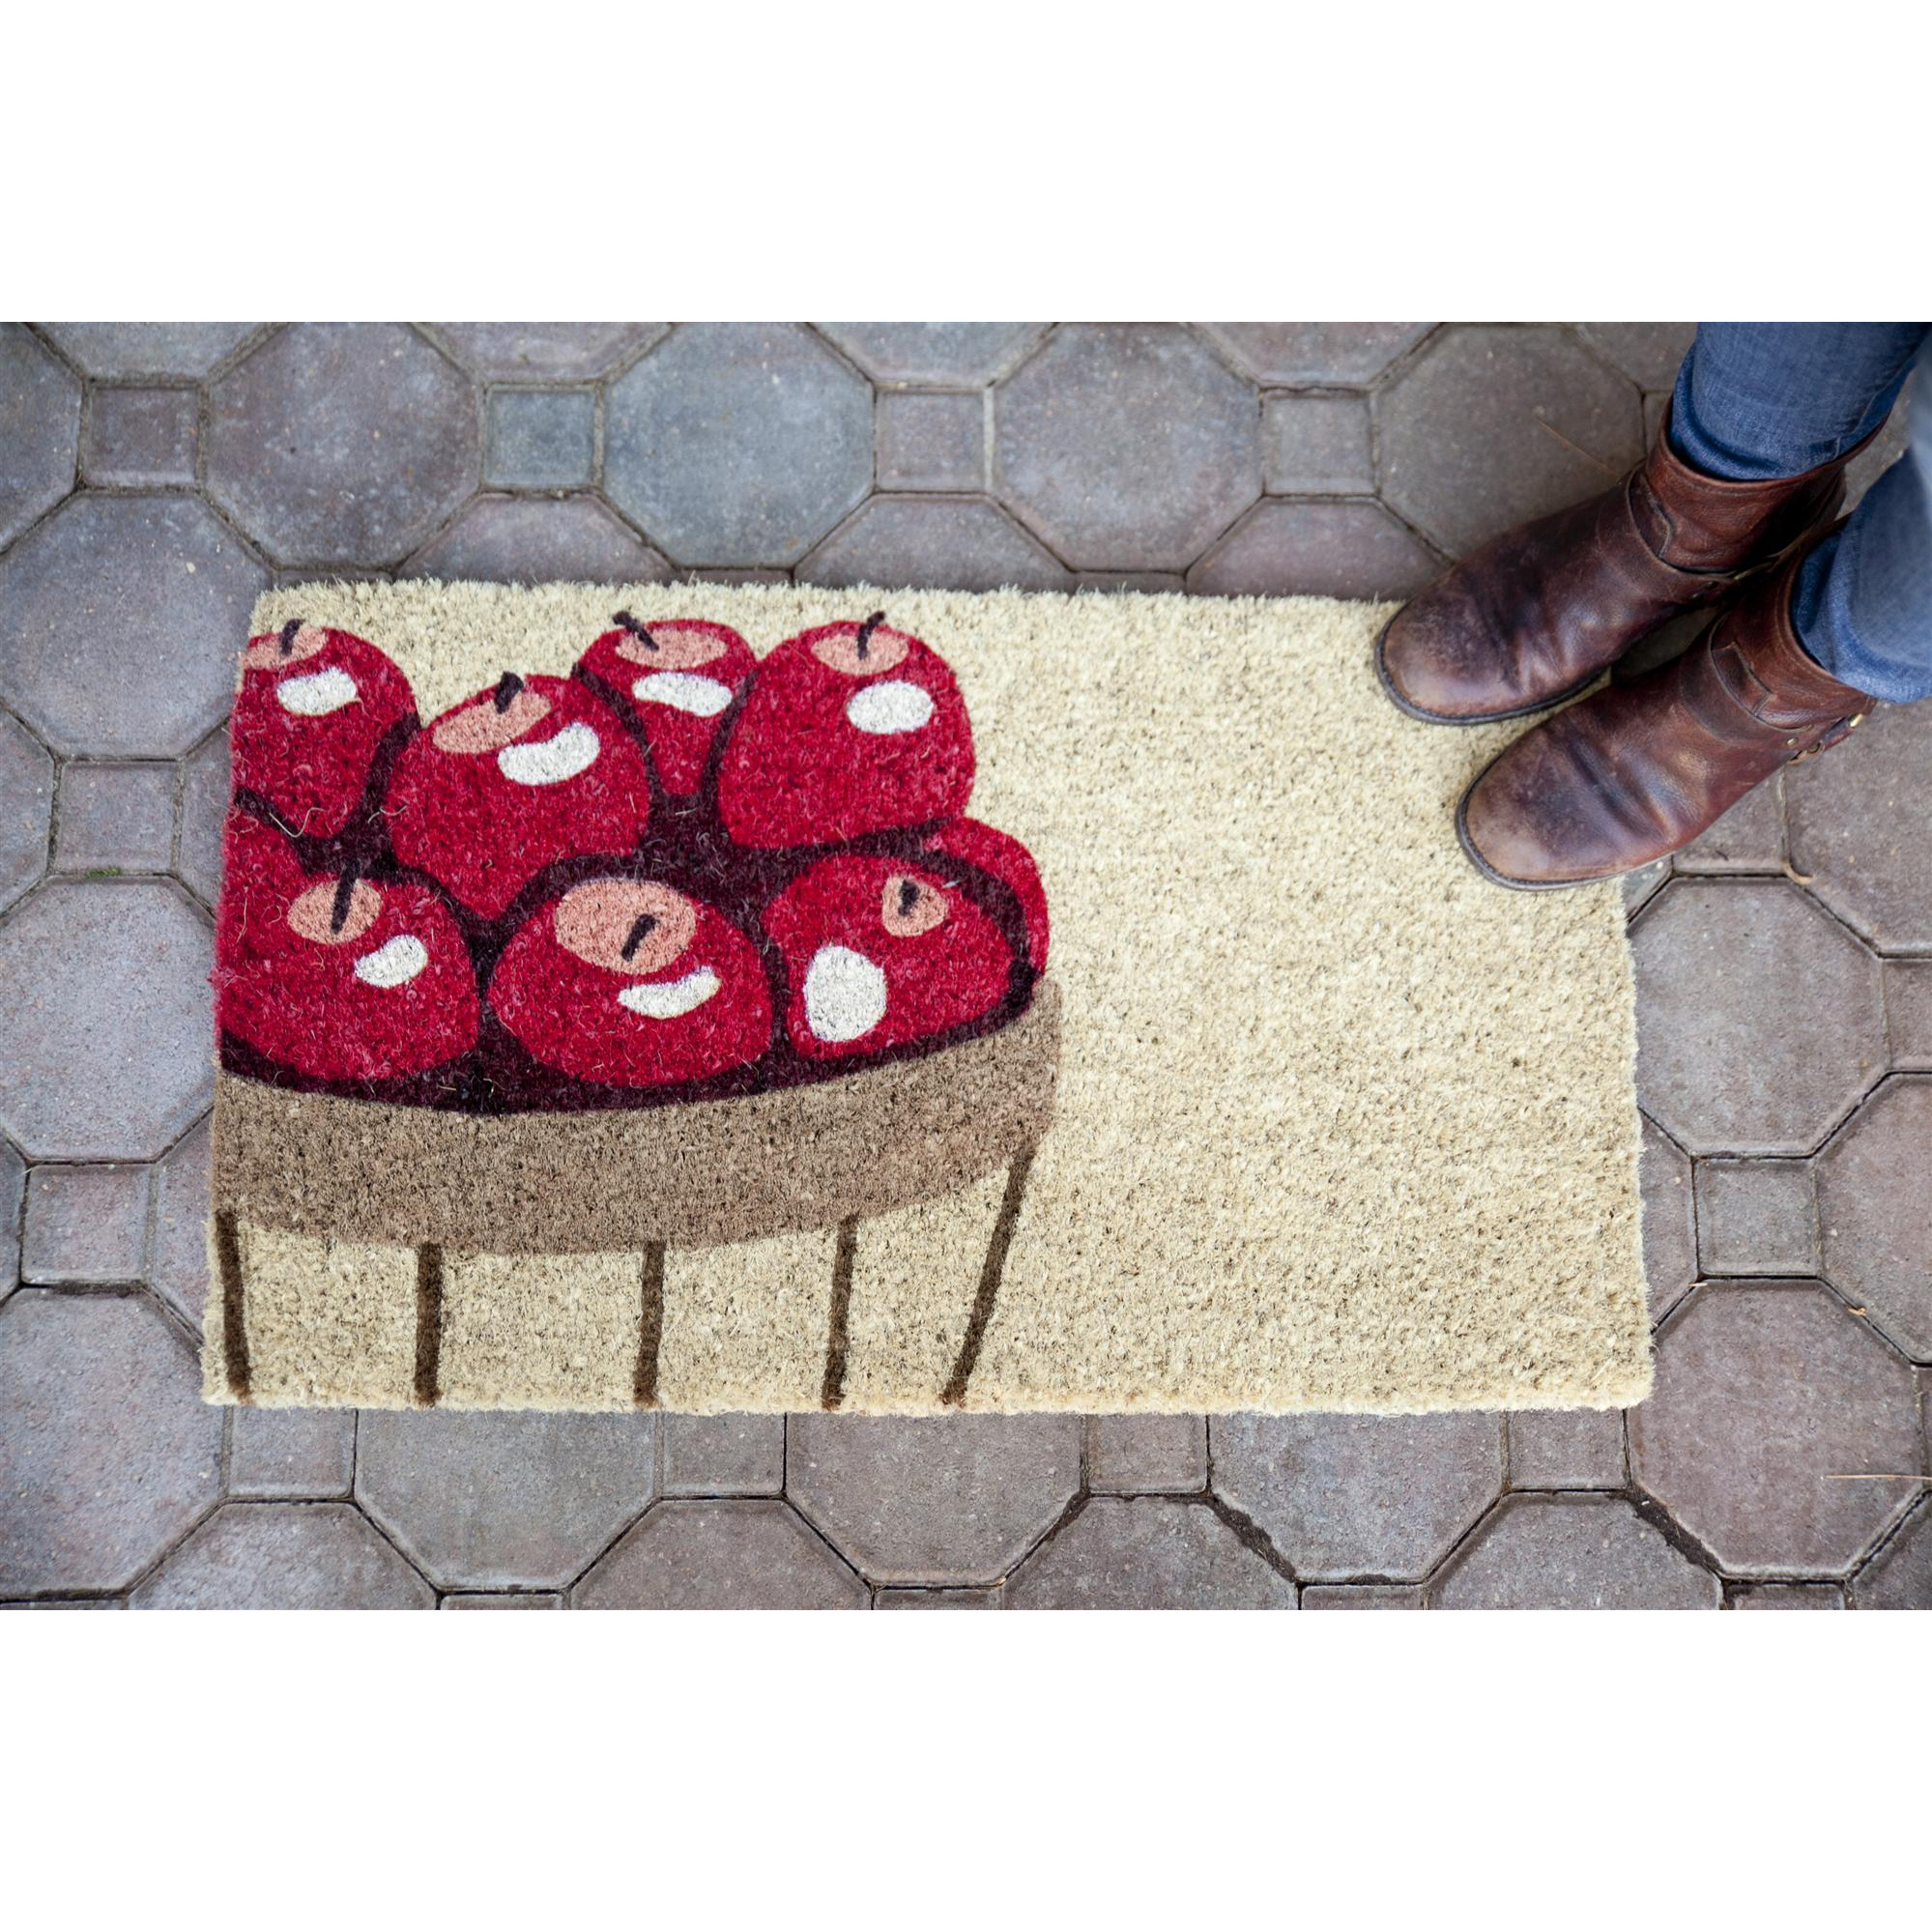 Entryways Apples Handwoven Autumn Themed Coconut Fiber Doormat, 18 x 30 Inch